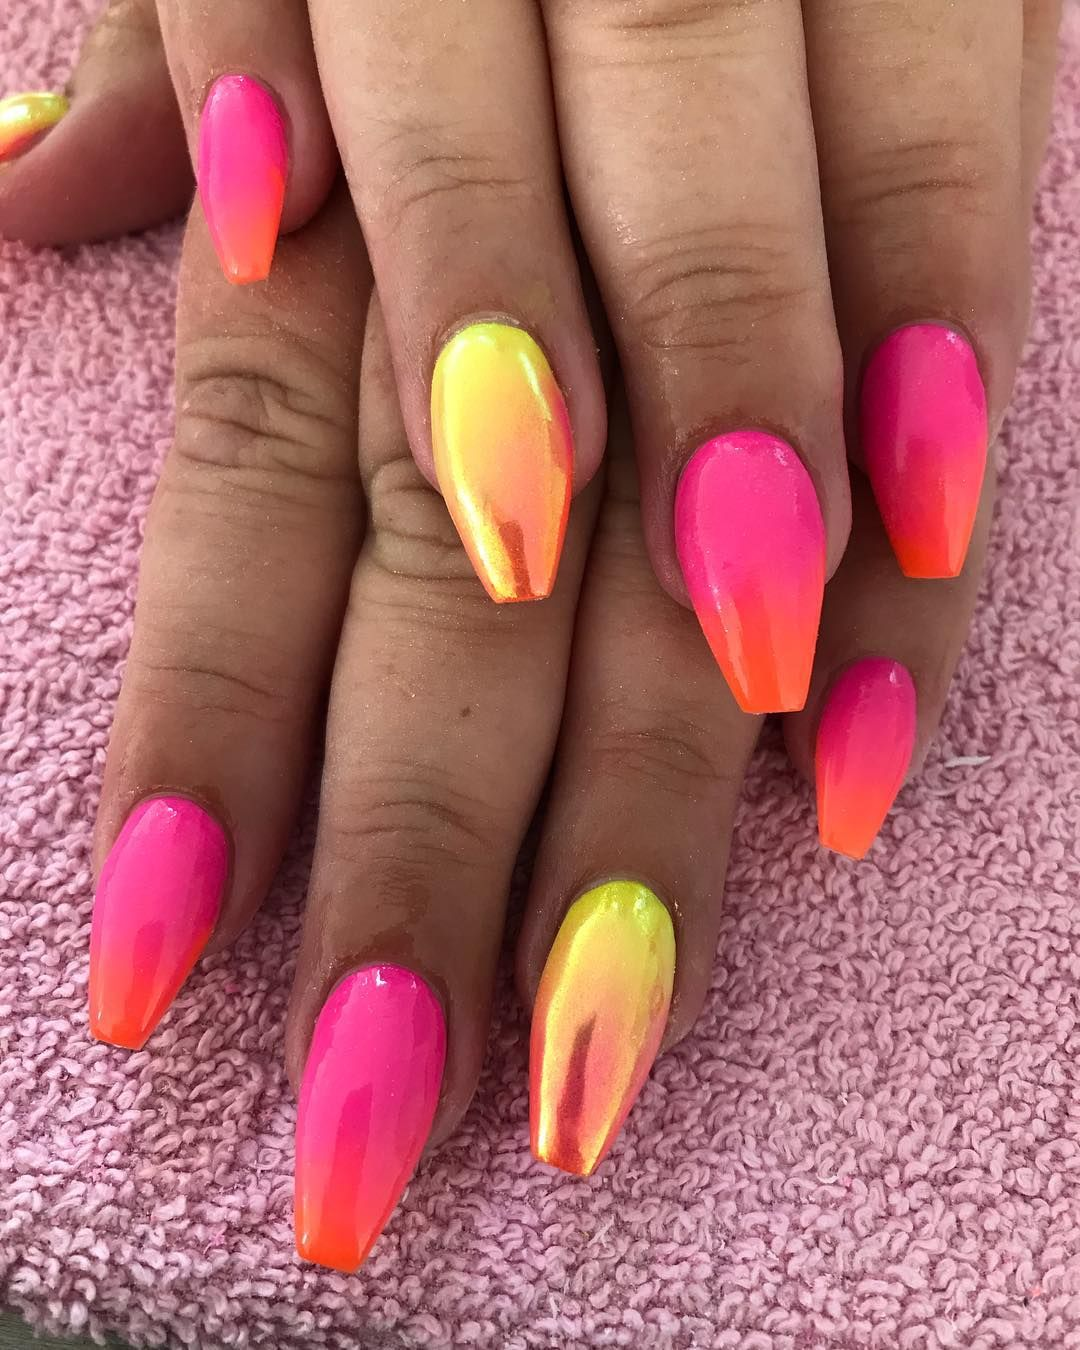 #nails in 2019